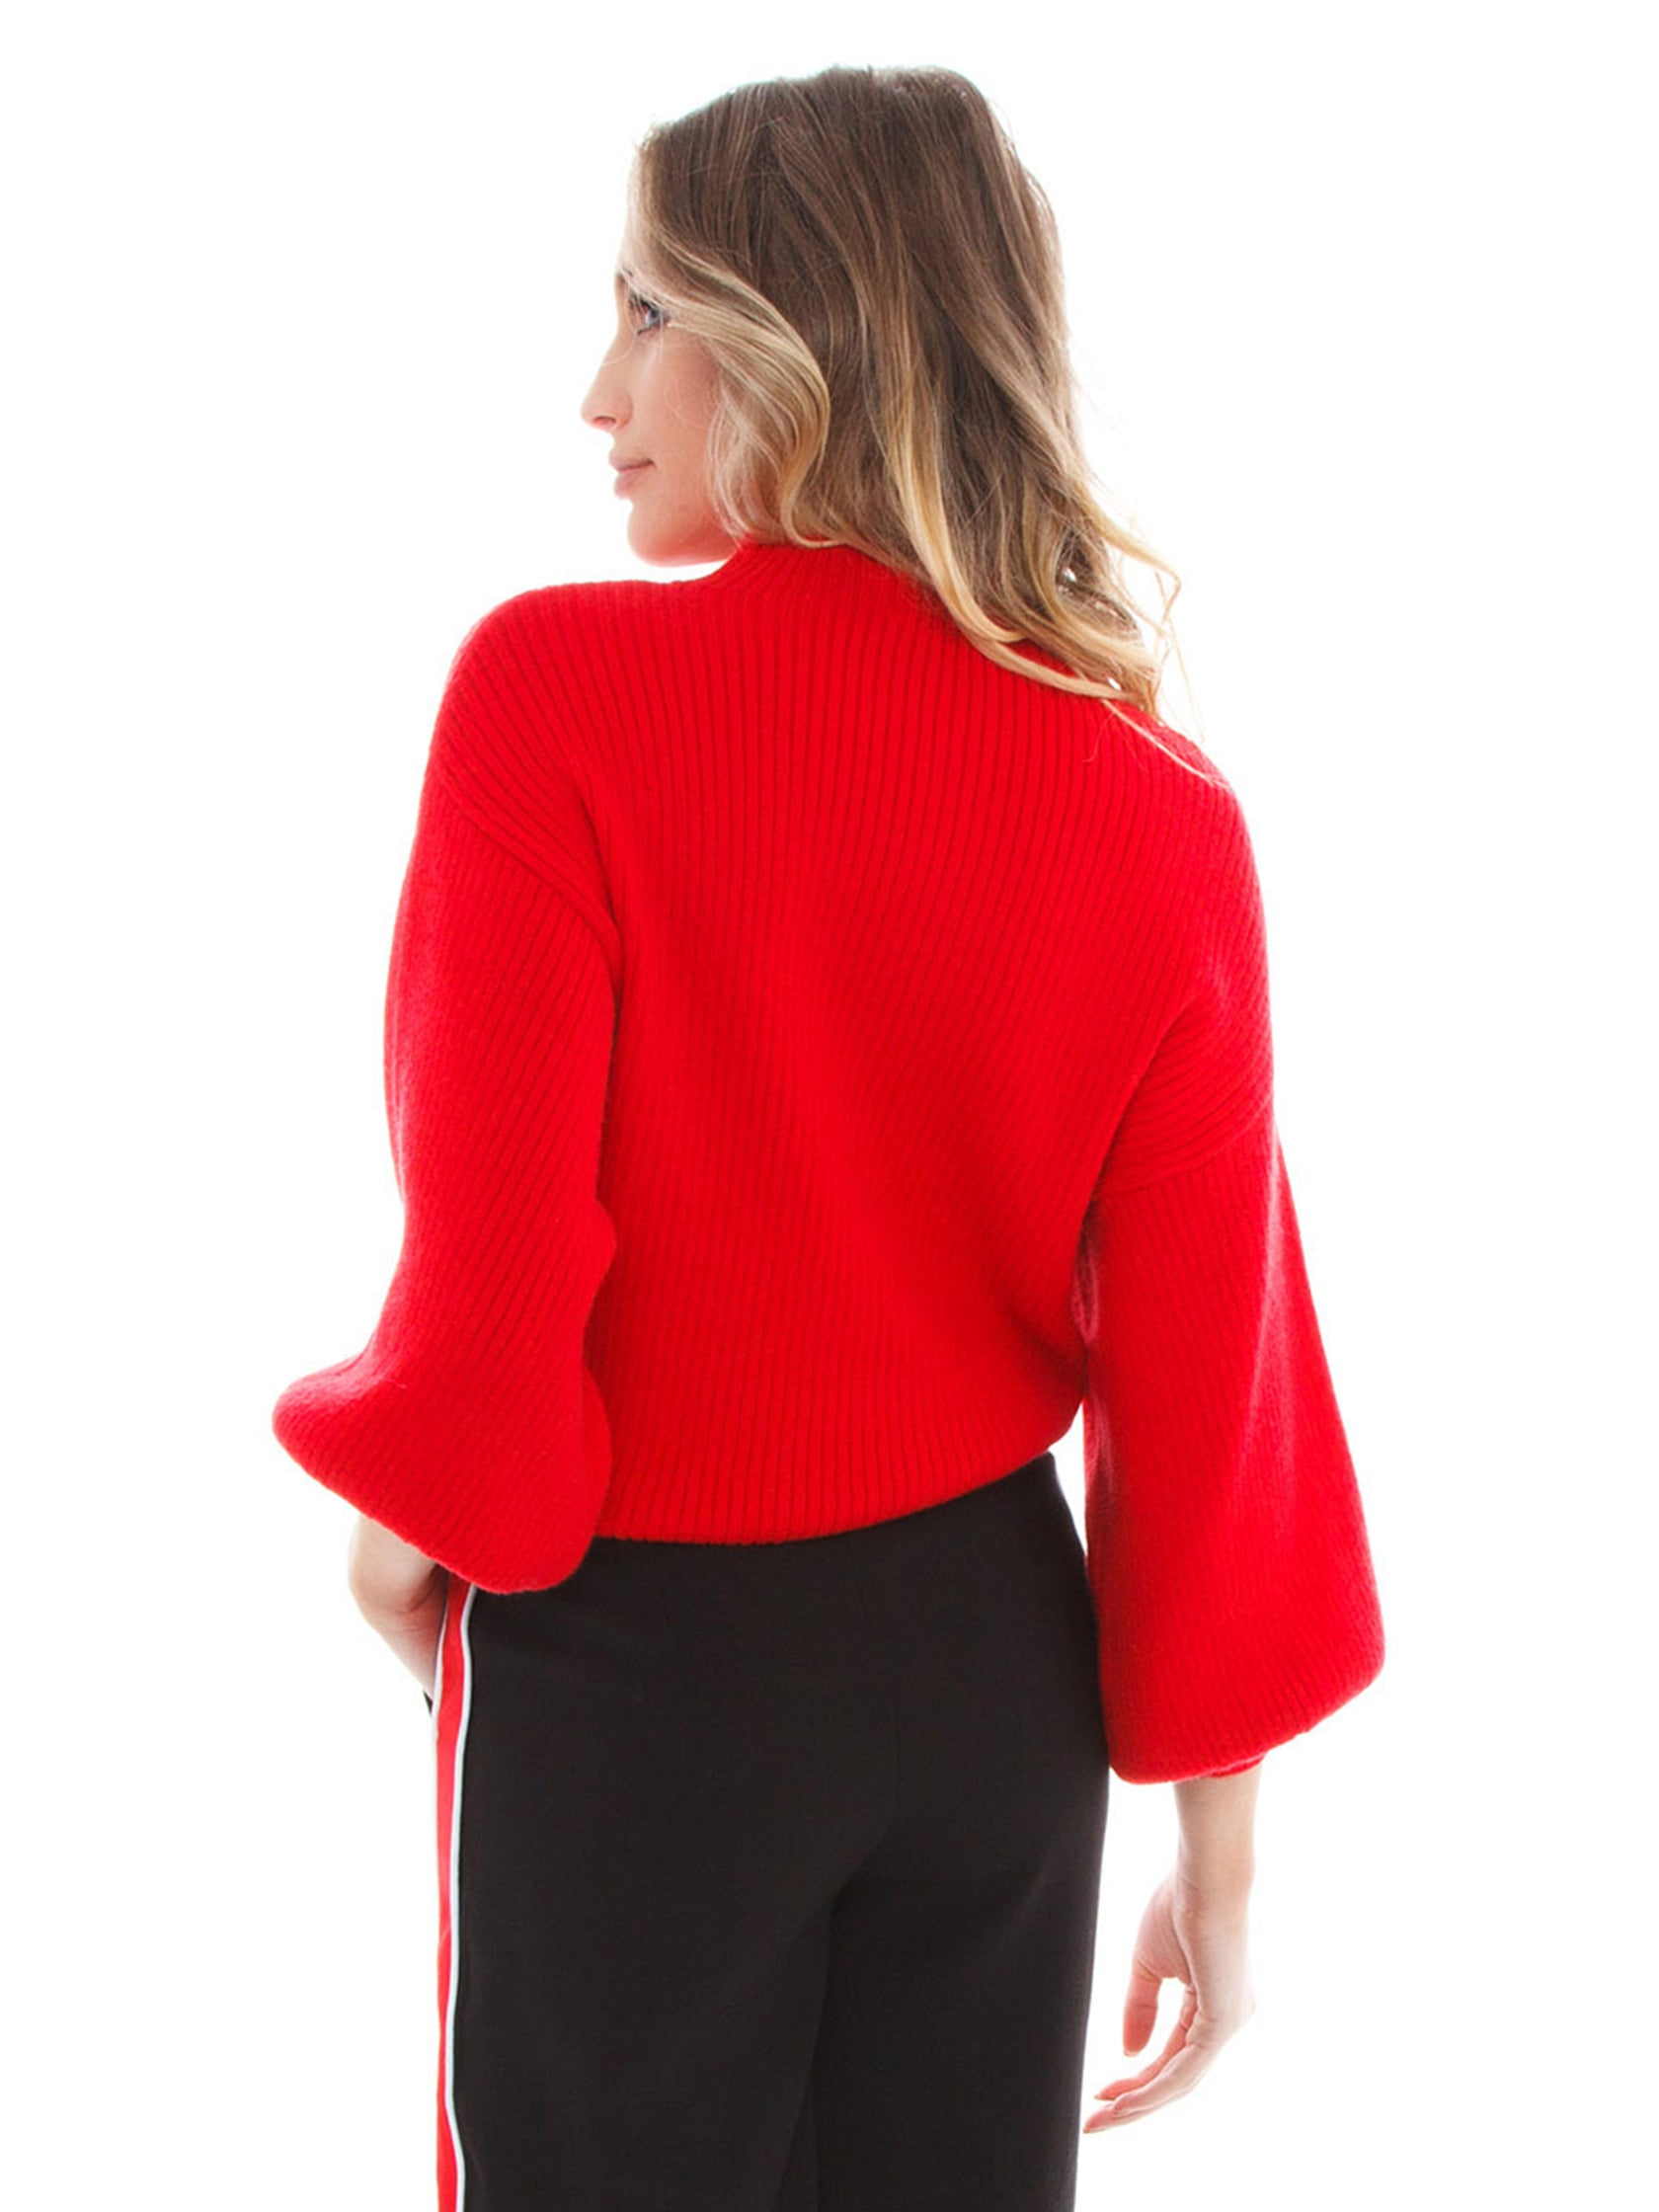 Women wearing a top rental from Line & Dot called Alder Sweater